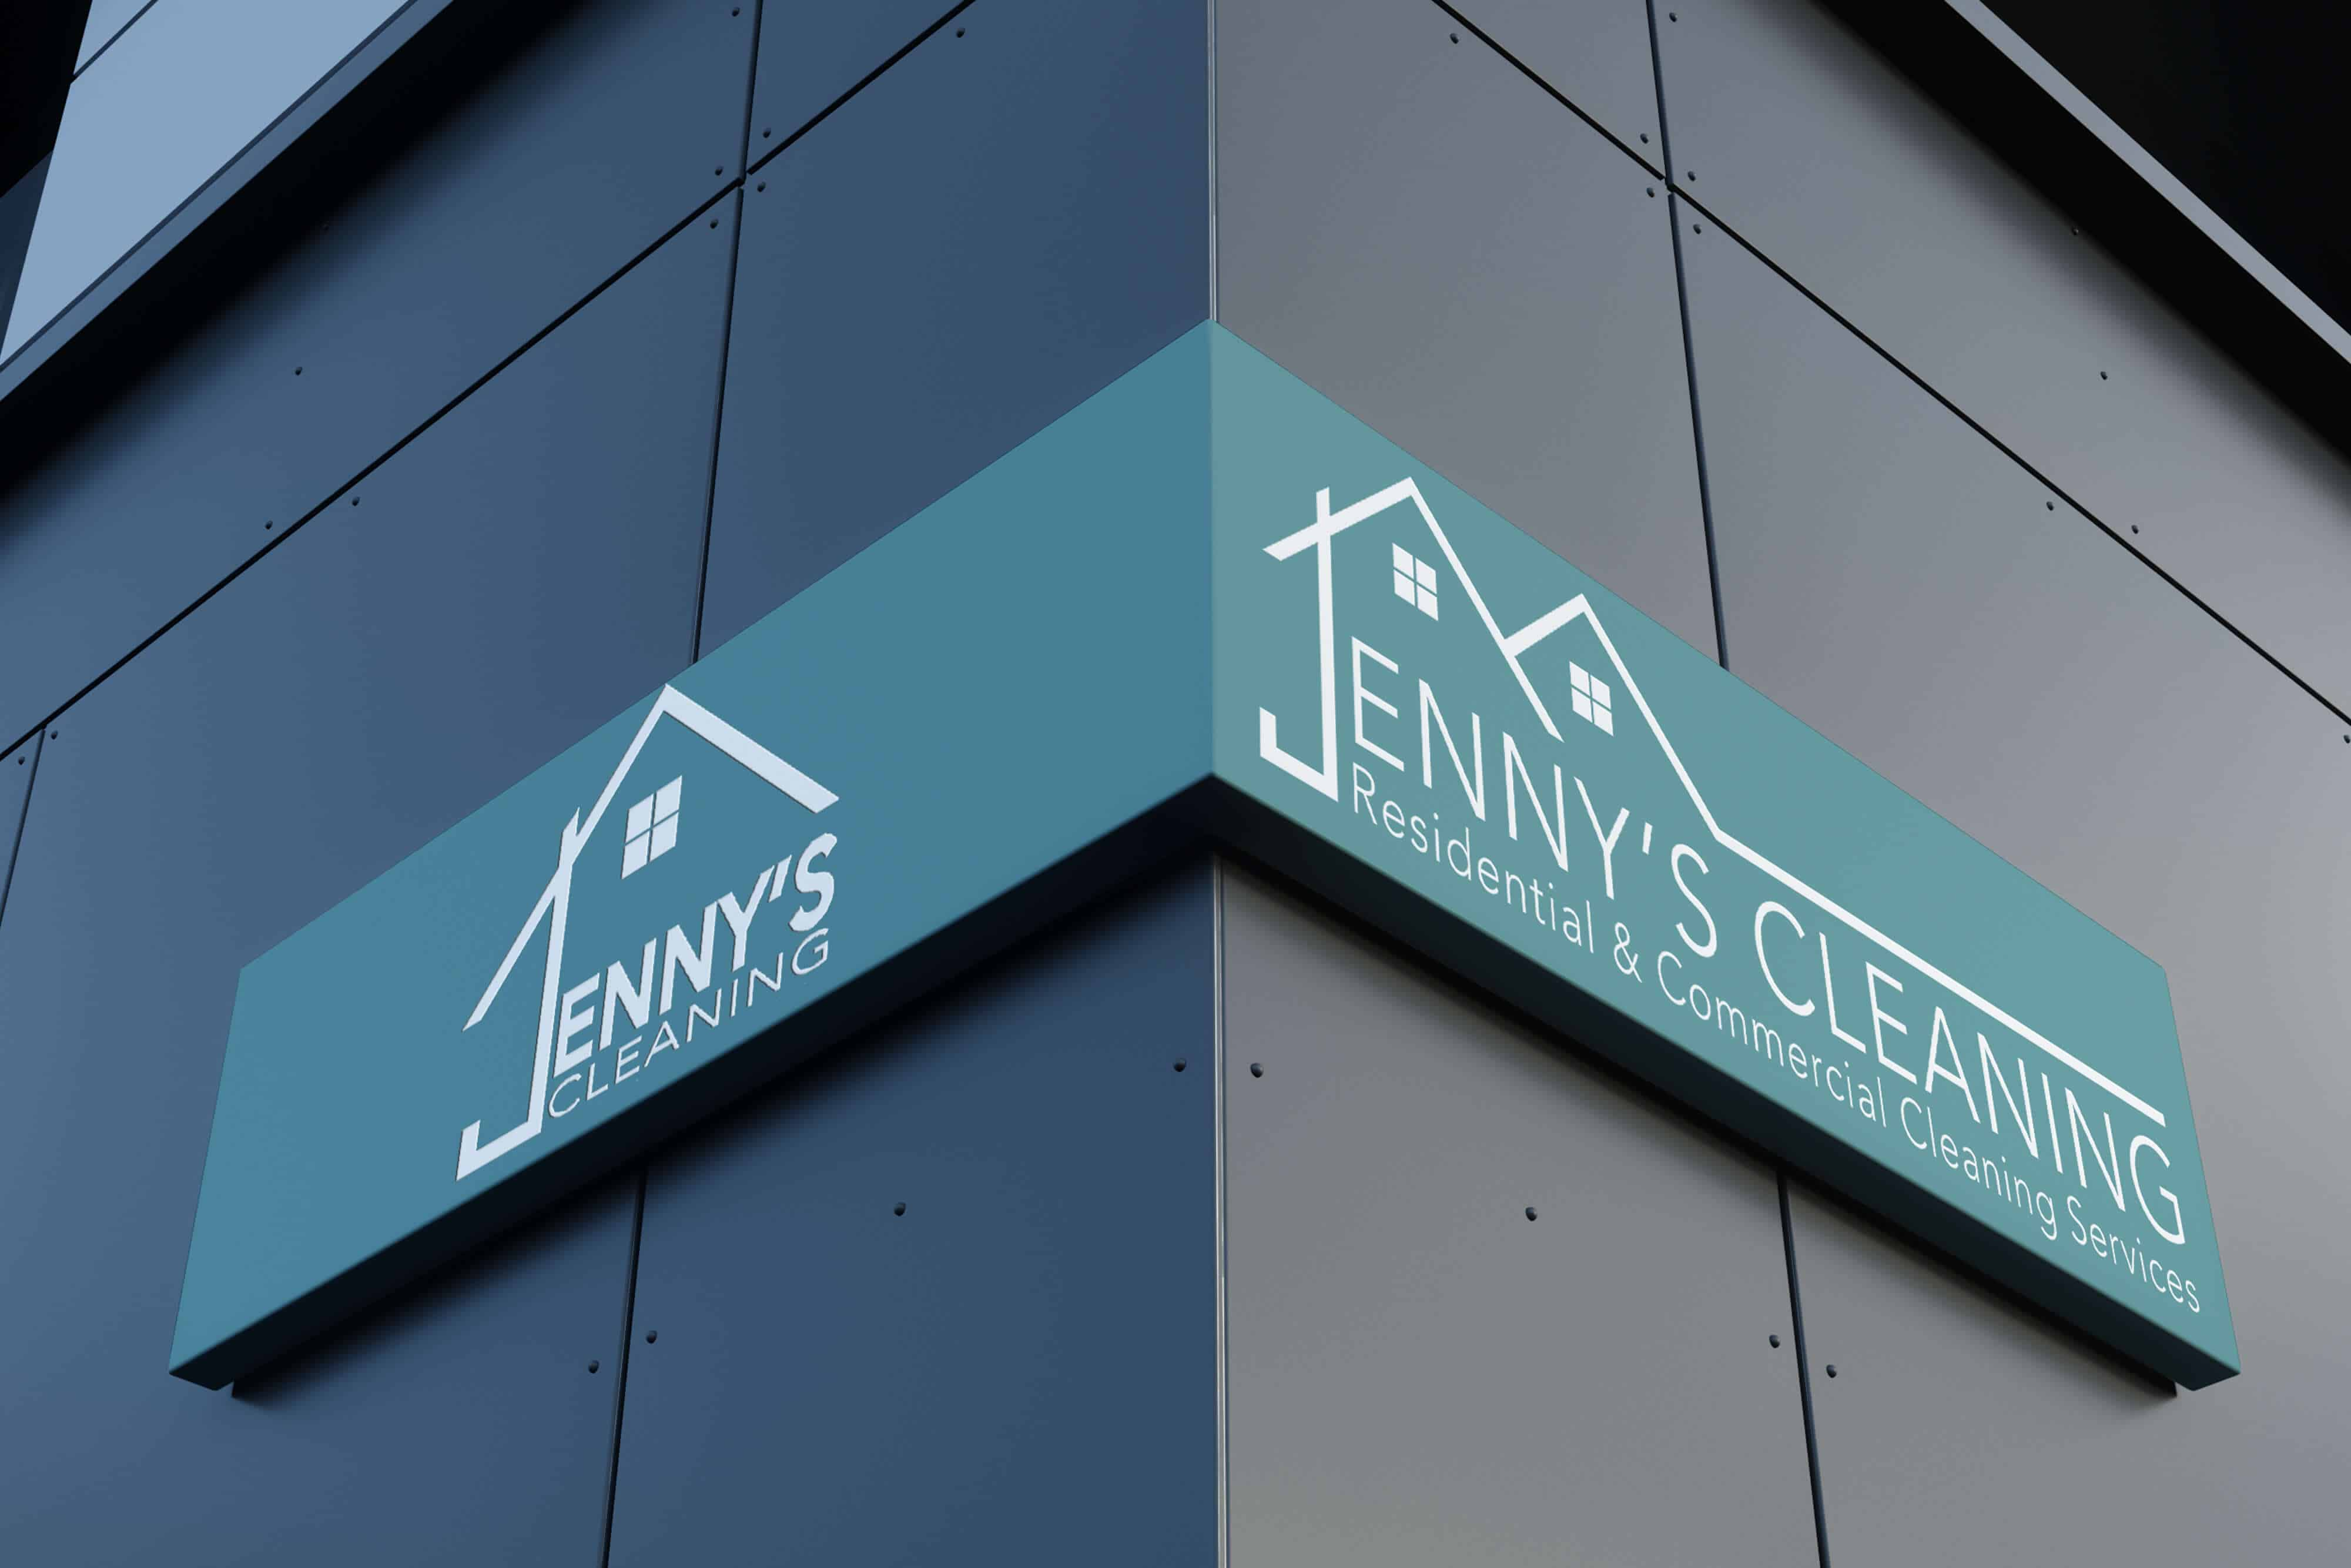 Jenny's Cleaning Commercial Cleaning Services Corner Mounted Sign on building exterior